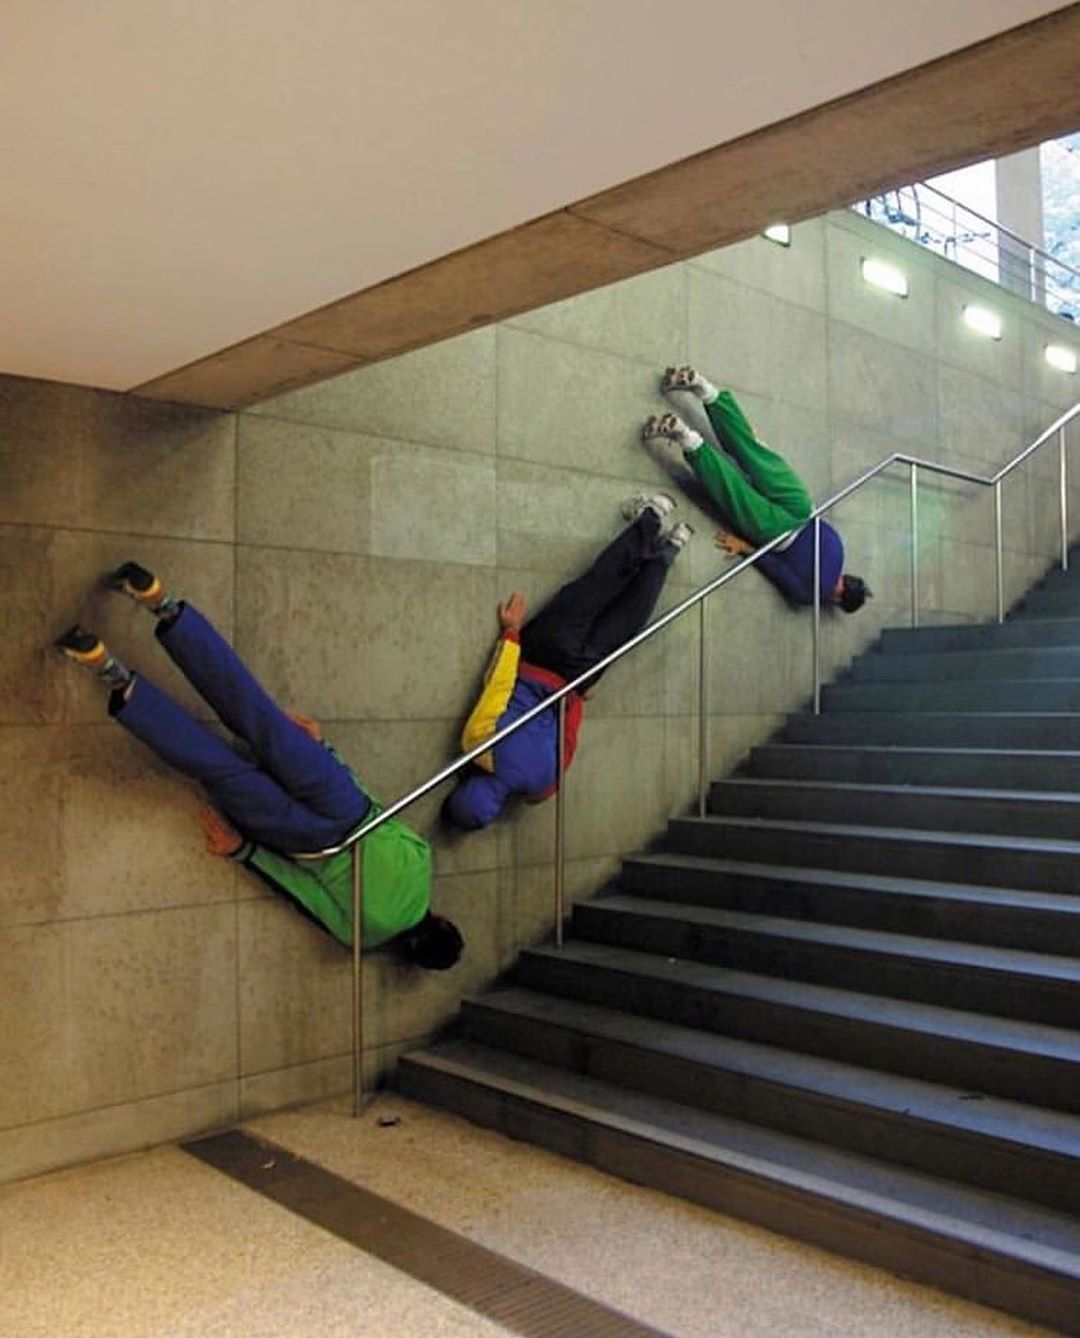 Bodies in urban spaces, a series by Willi Dorner Myartisreal